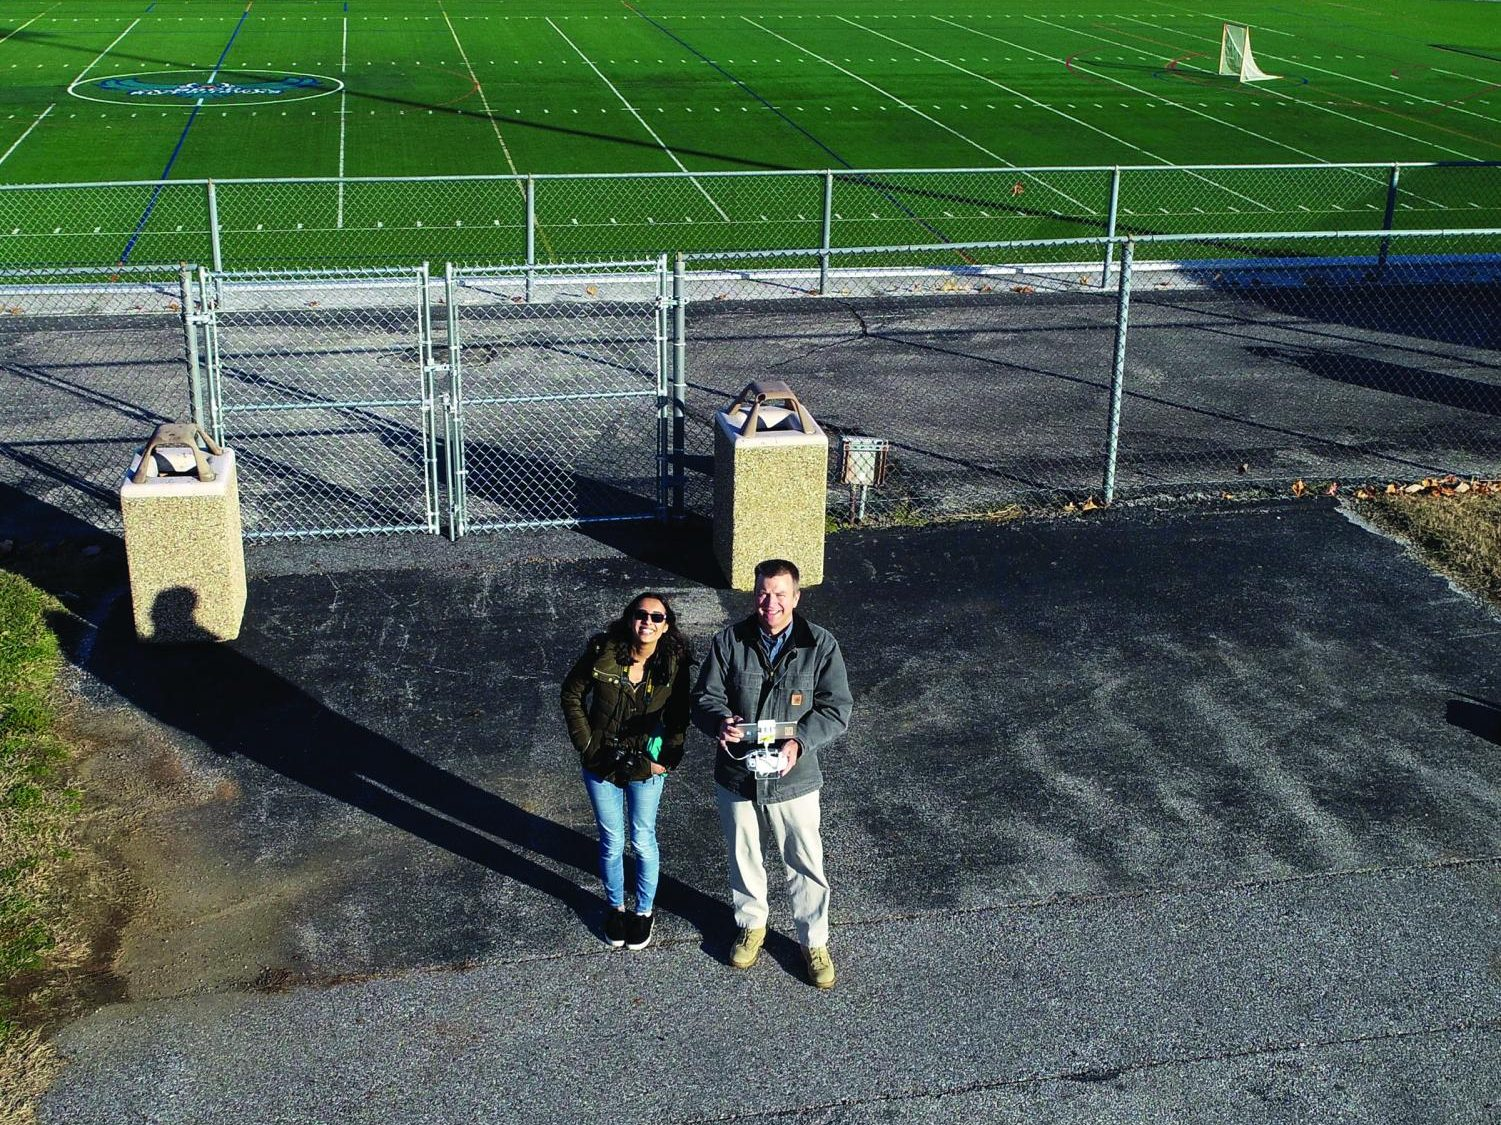 Former Campus Current Editor-in-Chief Amber Nathan watches Tim Tumelty, who is in charge of AACC's drone program, fly a drone on campus.